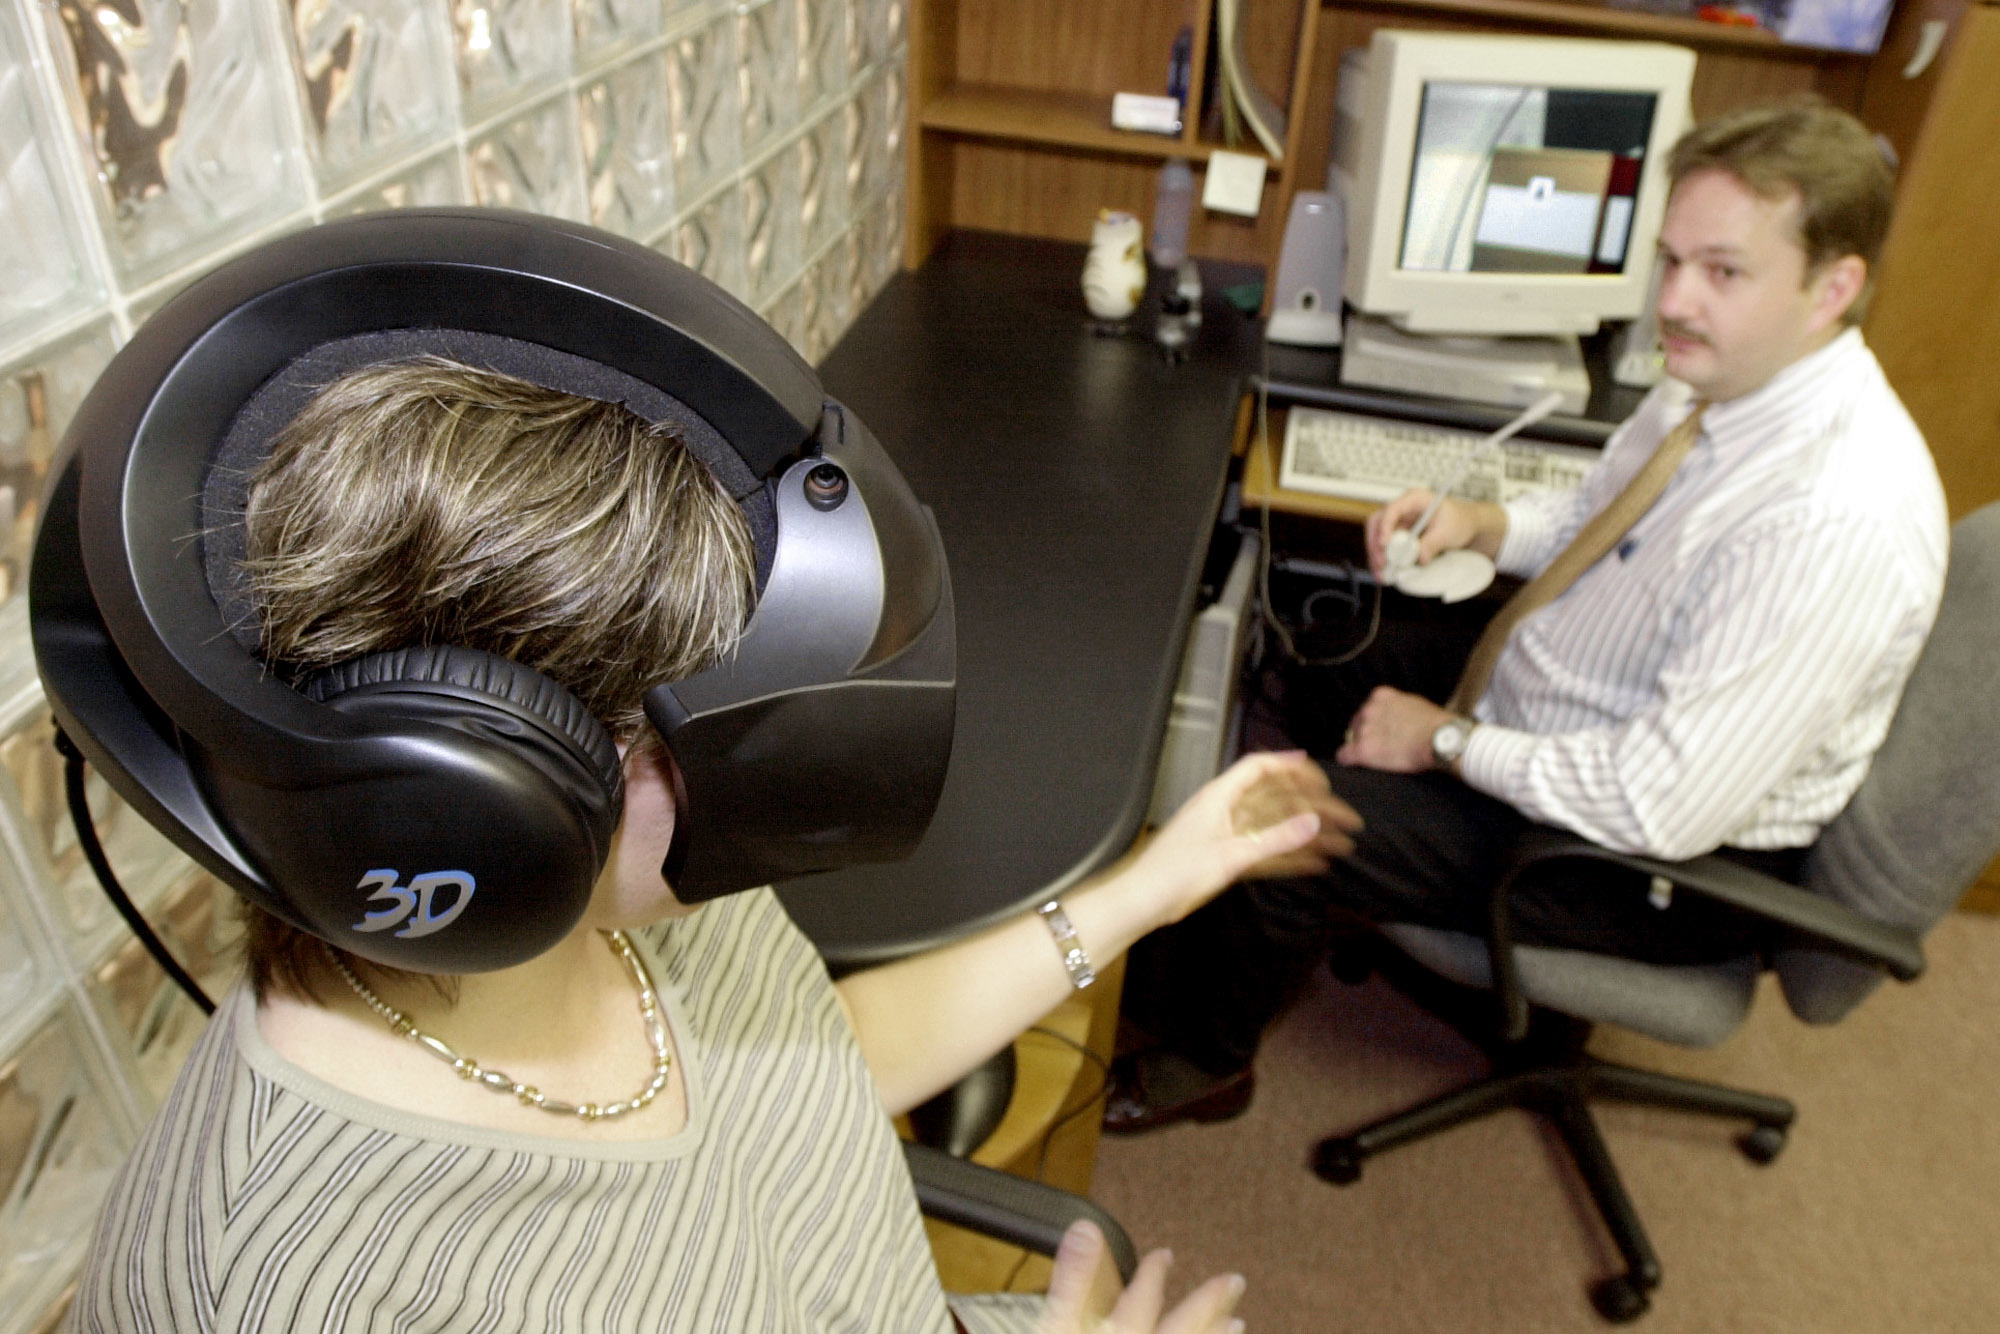 FOR USE WITH FEATURE TITLED VIRTUAL THERAPY -- Esther Begle, left, wears a virtual-reality helmet as she demonstrates a therapy session at Virtually Better Inc. in Atlanta, May 23, 2000, to combat her fear of flying. She reaches toward Ken Graap, CEO of Virtually Better, who uses a computer to control the simulated flight that Begle experiences.  (AP Photo/Ric Feld)